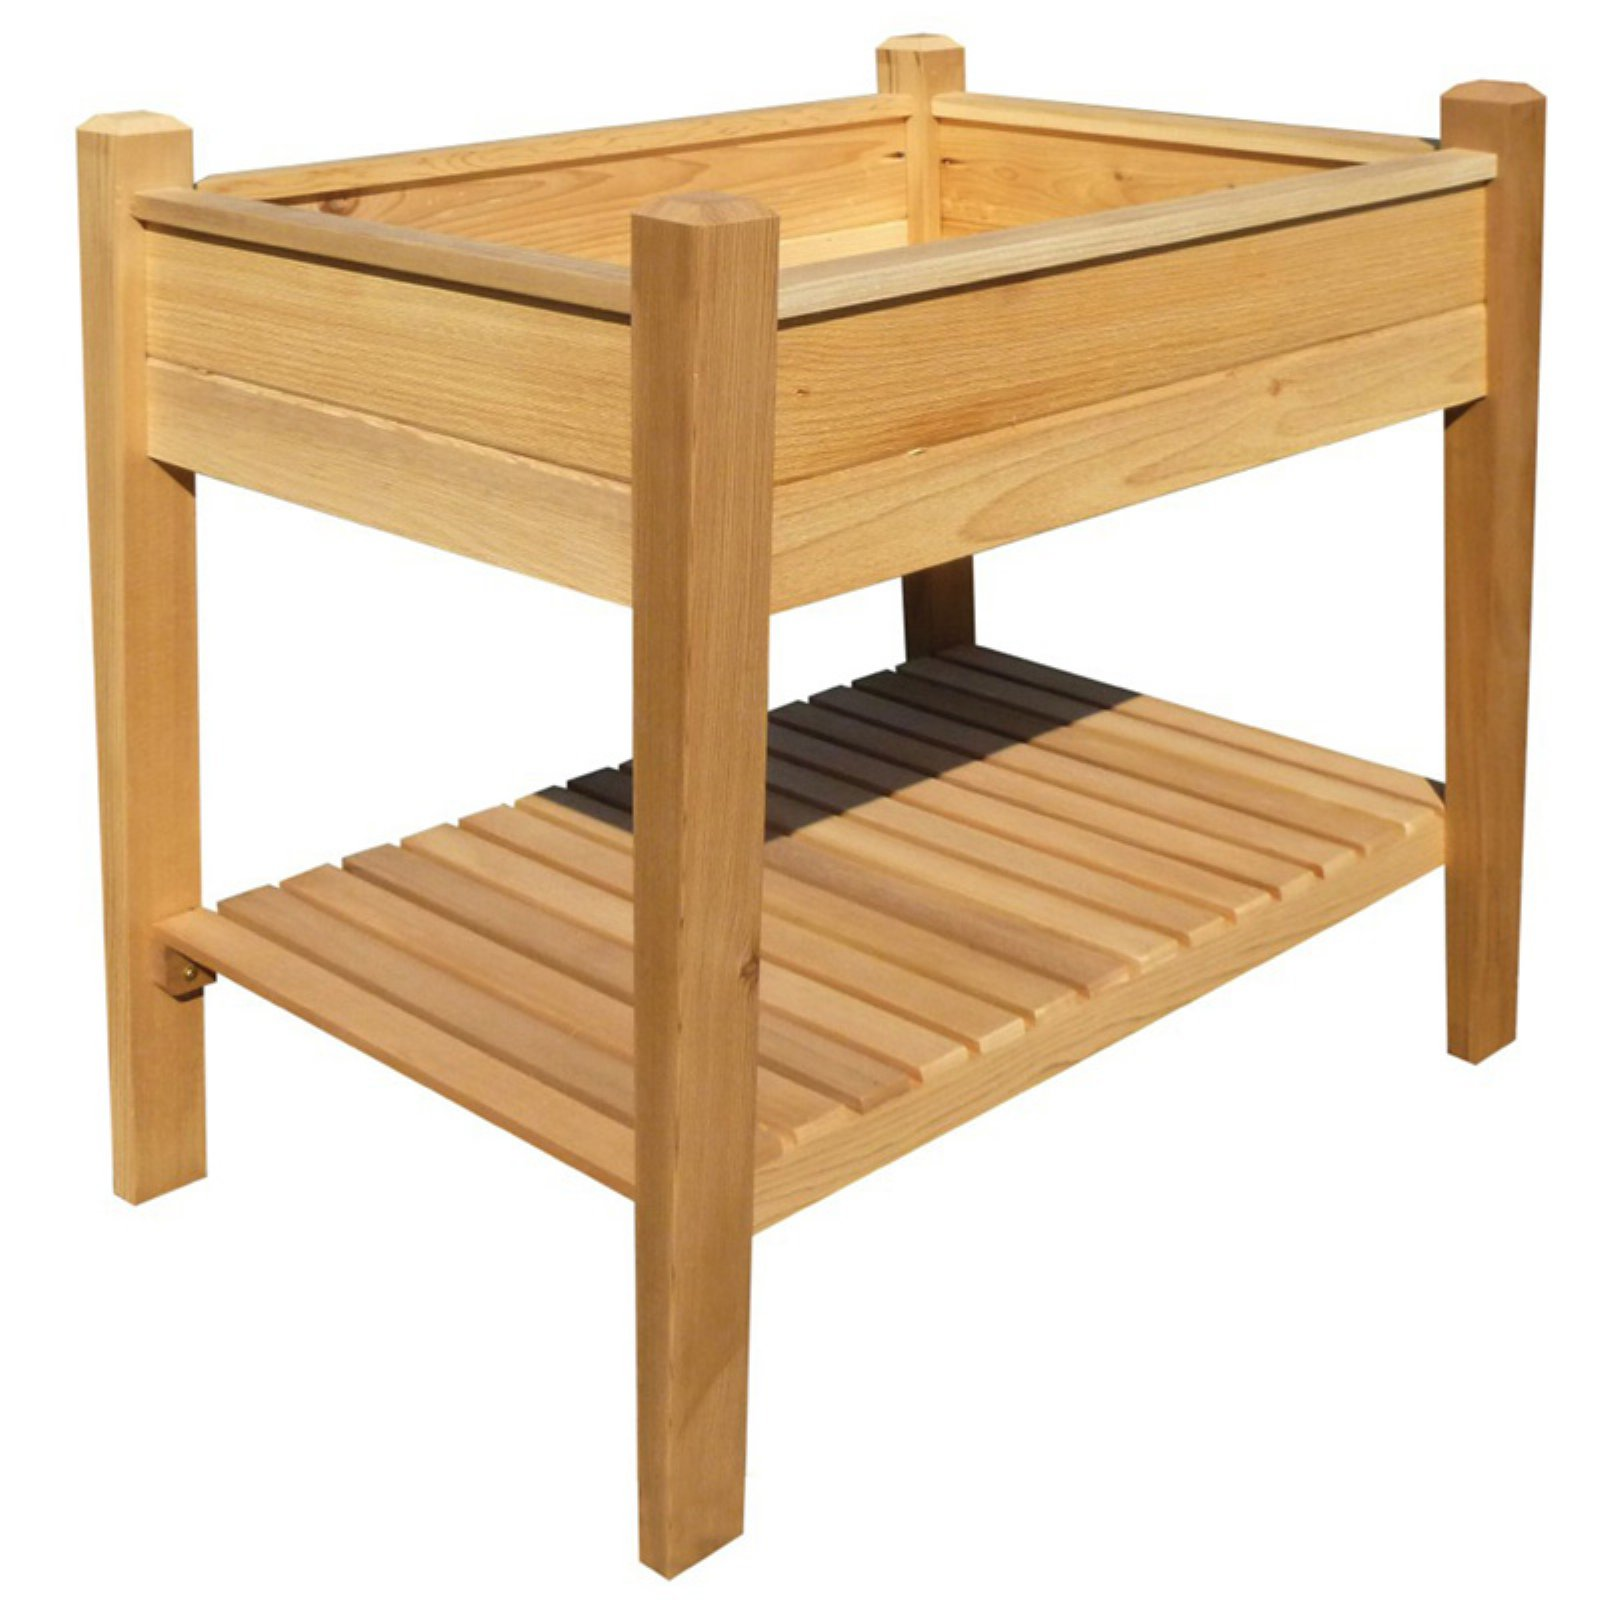 Phat Tommy Patio & Garden Elevated Cedar Planter Box 33L x 24W x 32H in. by Buyers Choice